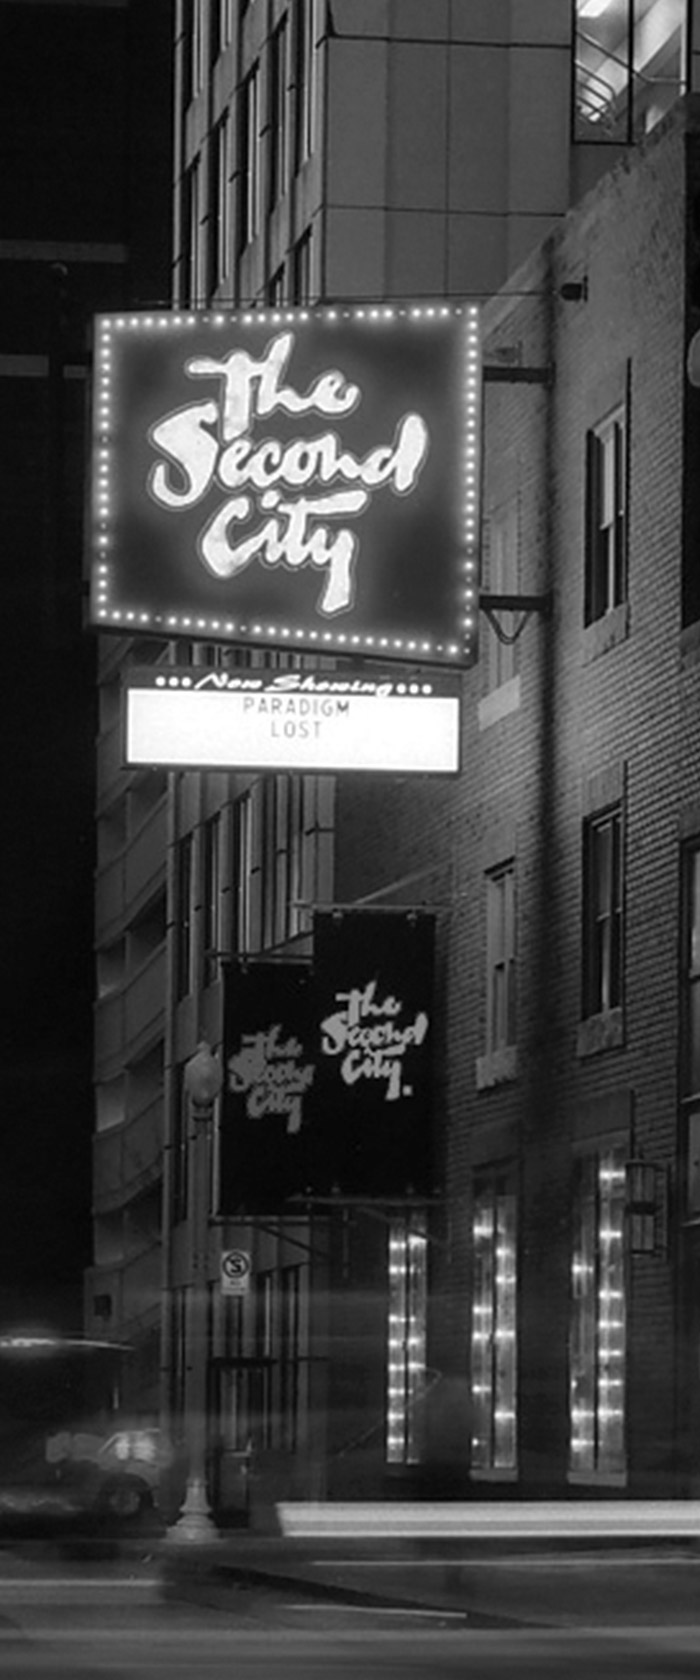 Second City opens in Detroit